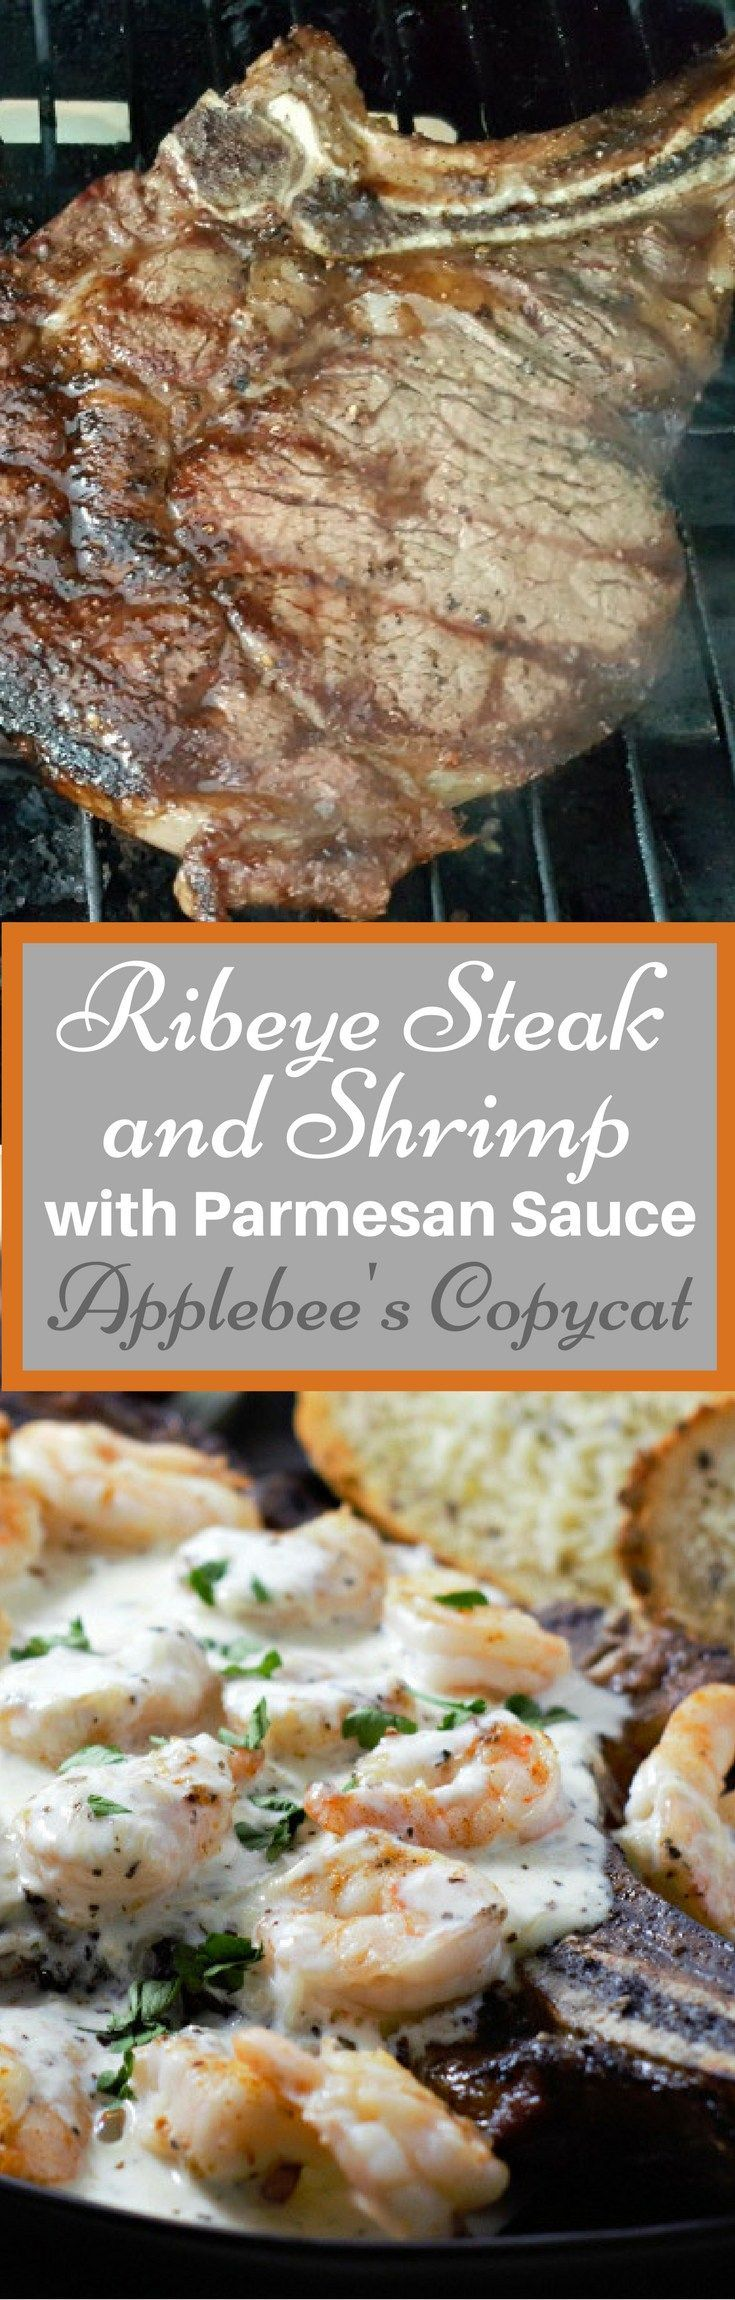 Ribeye steak and shrimp parmesan sauce